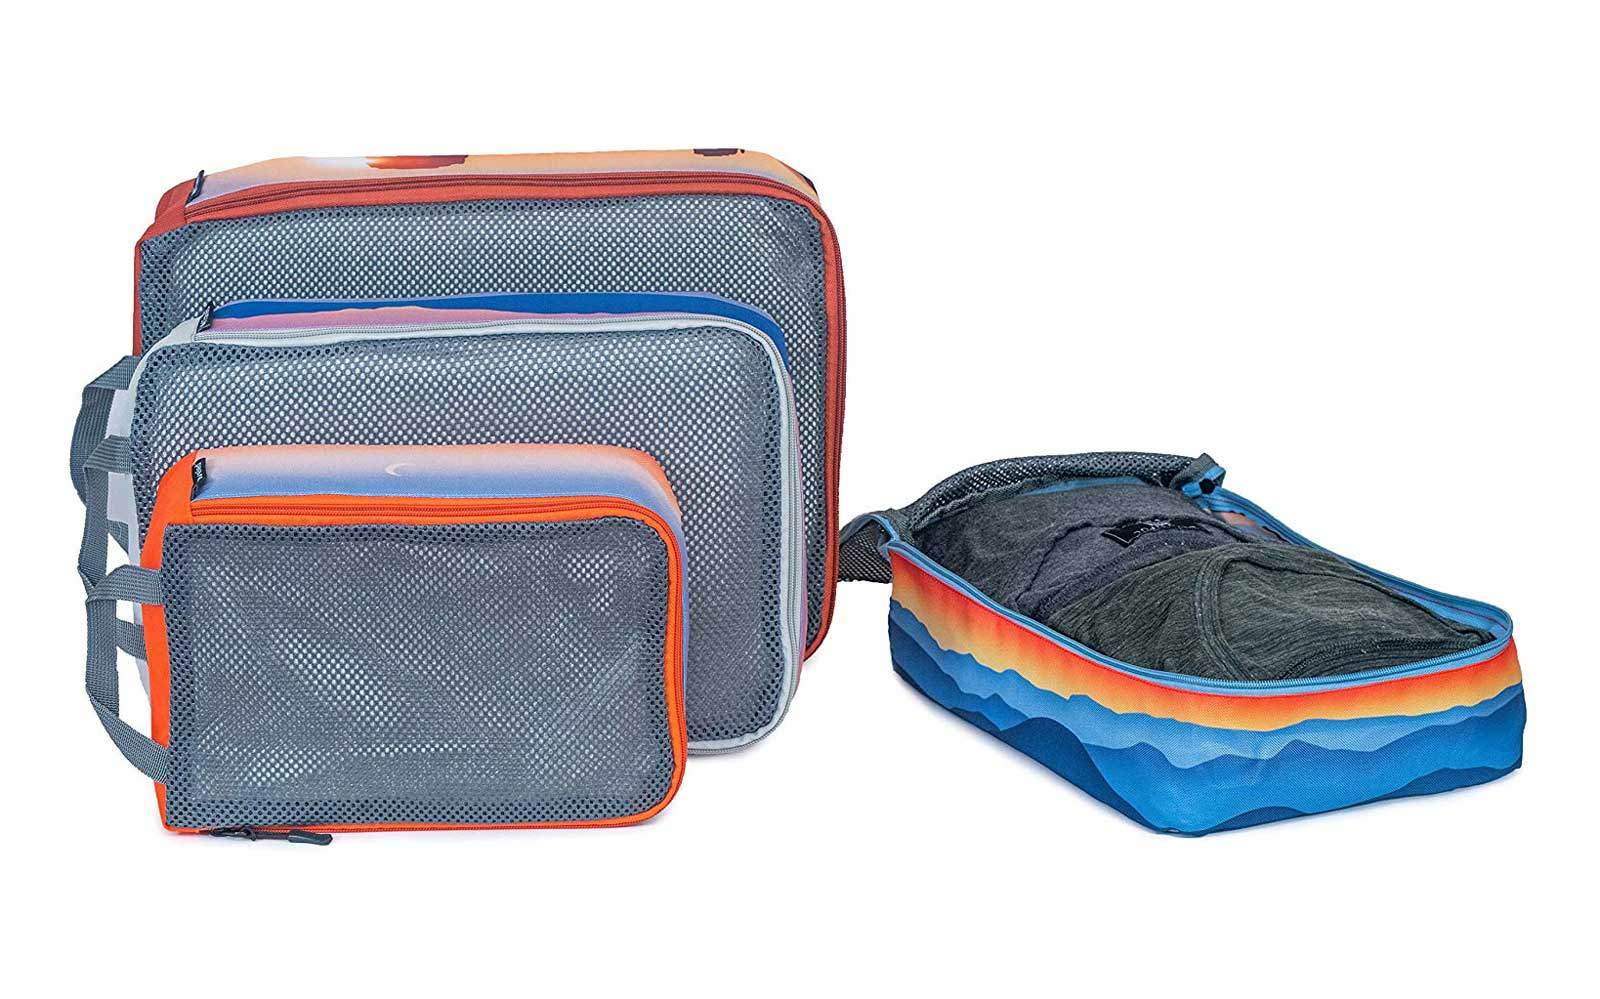 These National Parks-themed packing cubes will keep you organized on your next trip